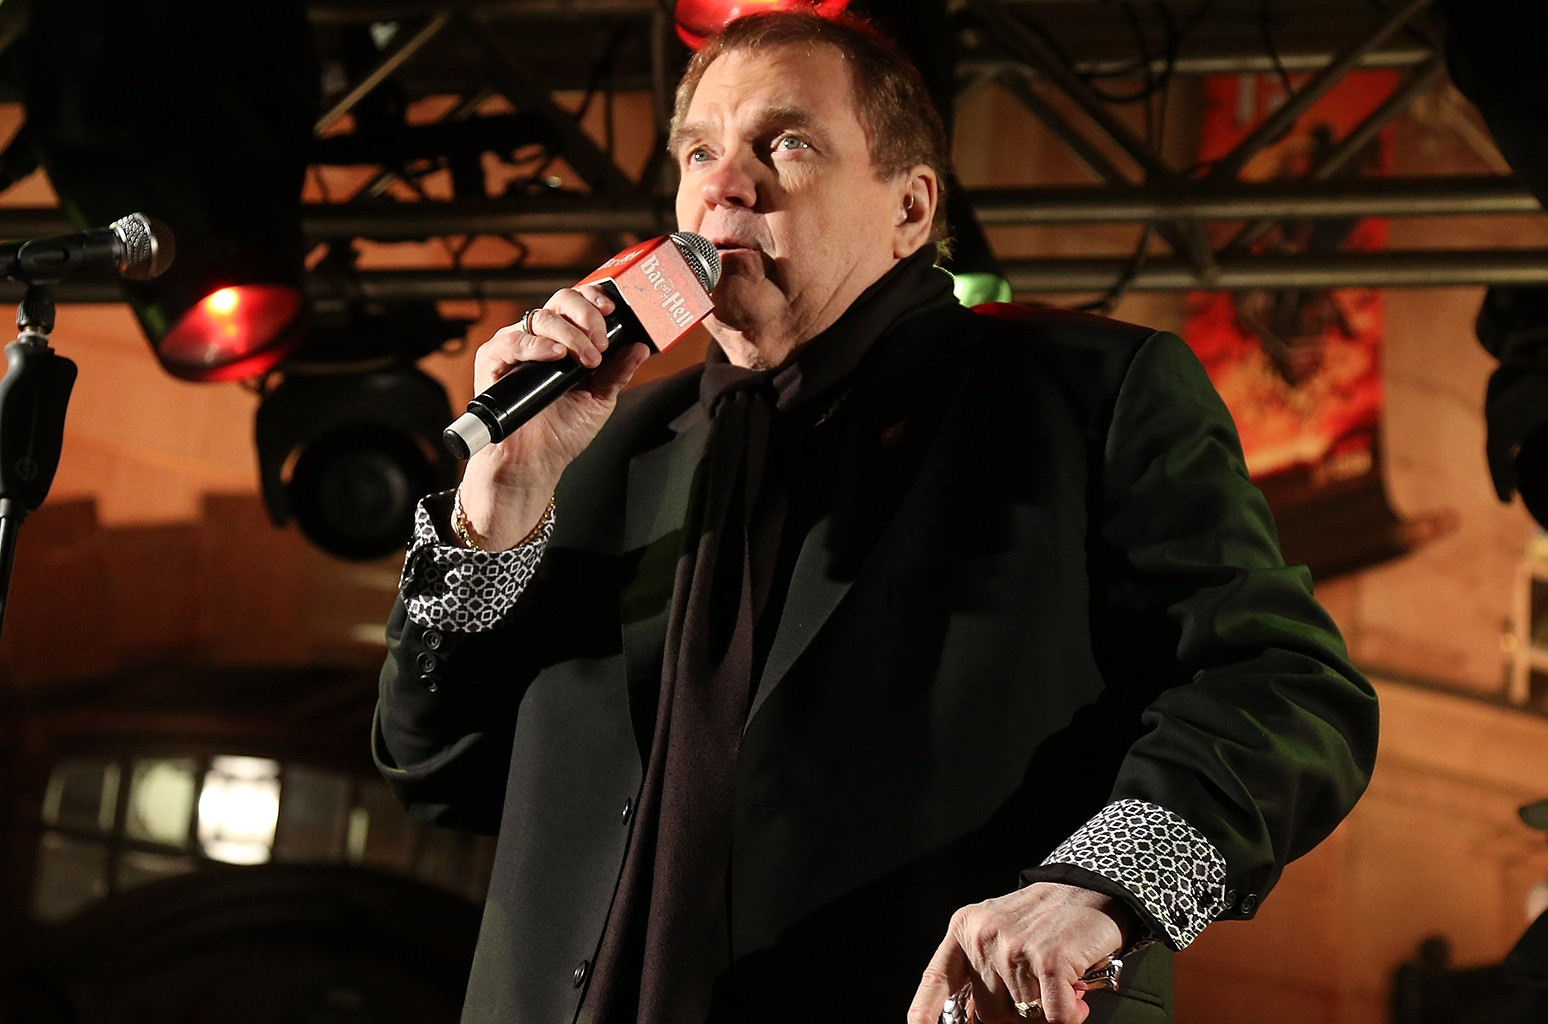 Meat Loaf speaks to the crowd at the launch for Jim Steinman's 'Bat Out of Hell The Musical' at the London Coliseum on St Martin's Lane on Nov. 3, 2016 in London.